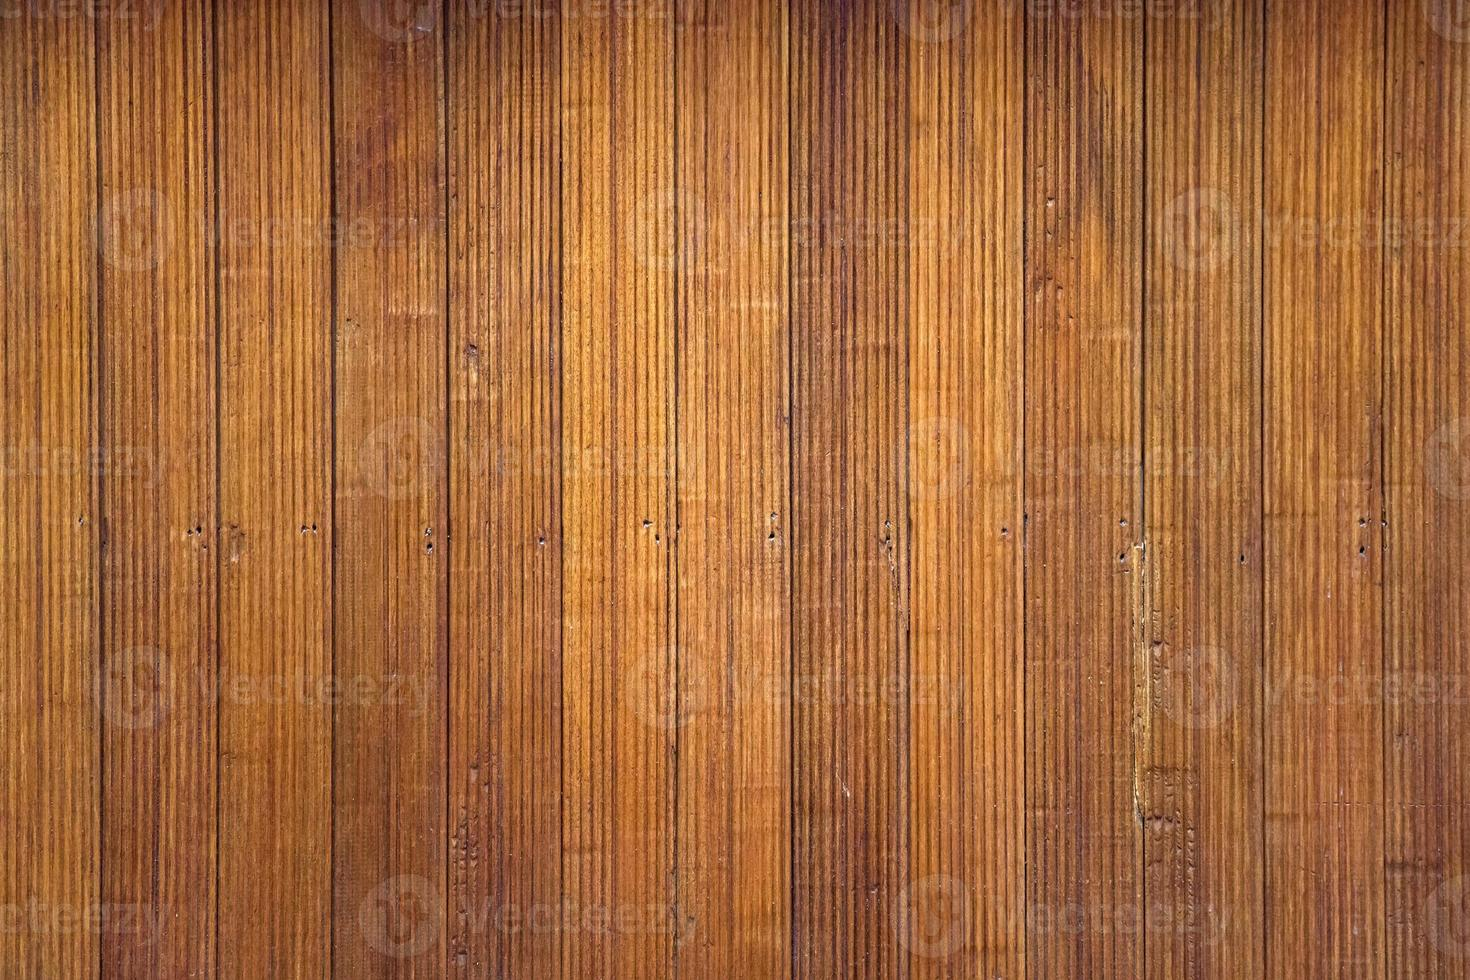 Vintage old wooden wall photo